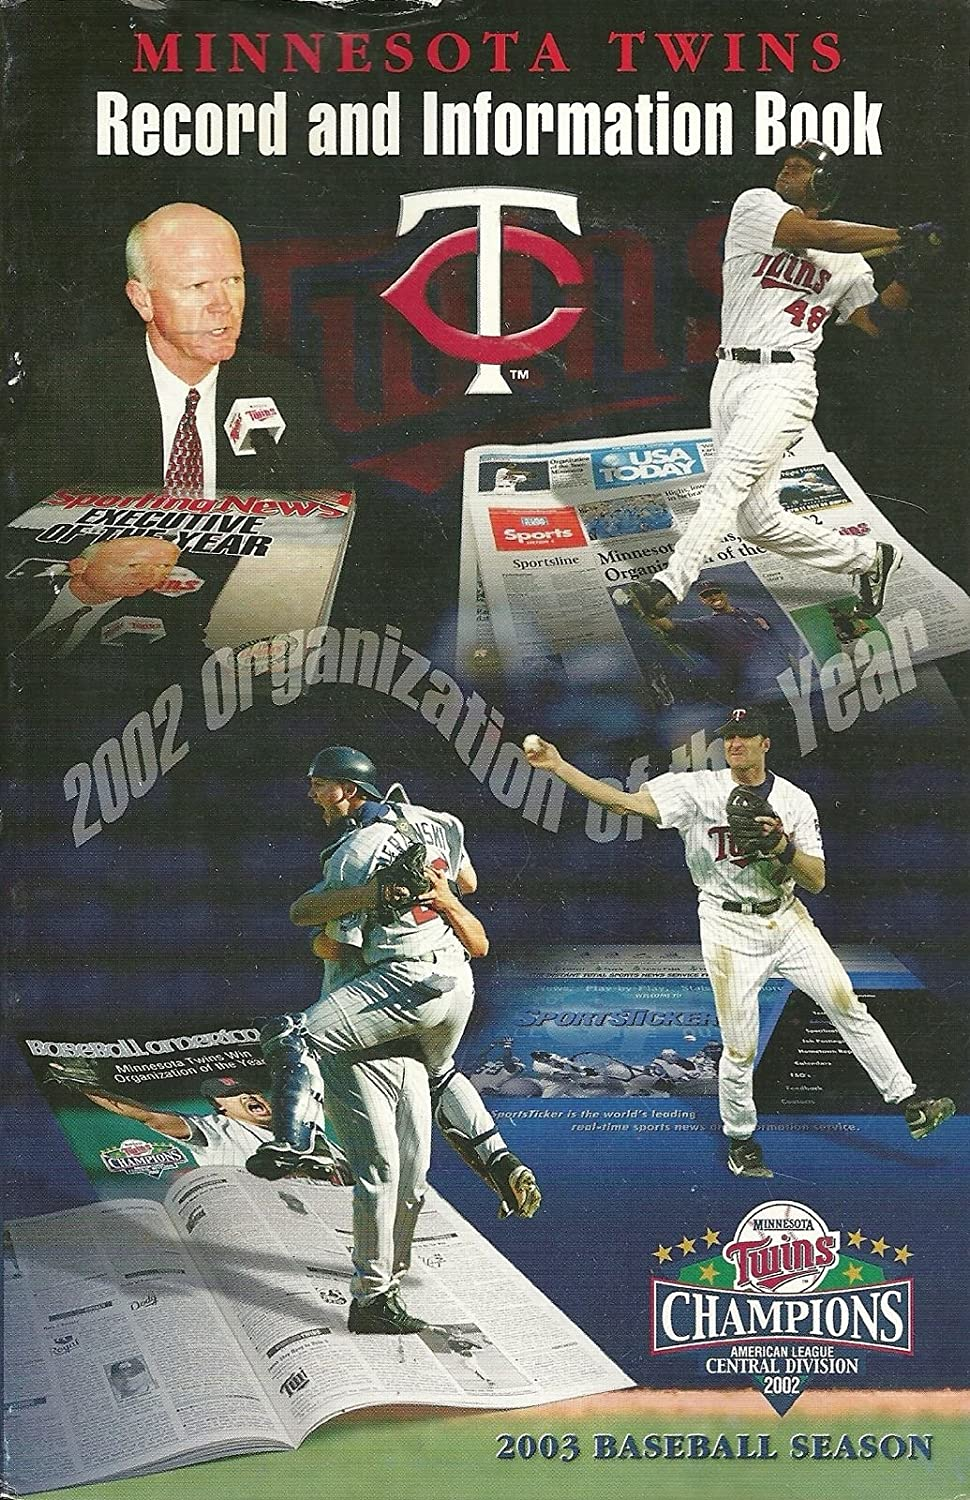 MINNESOTA TWINS MLB BASEBALL 2003 MEDIA GUIDE VINTAGE GREAT COLOR AUTHENTIC